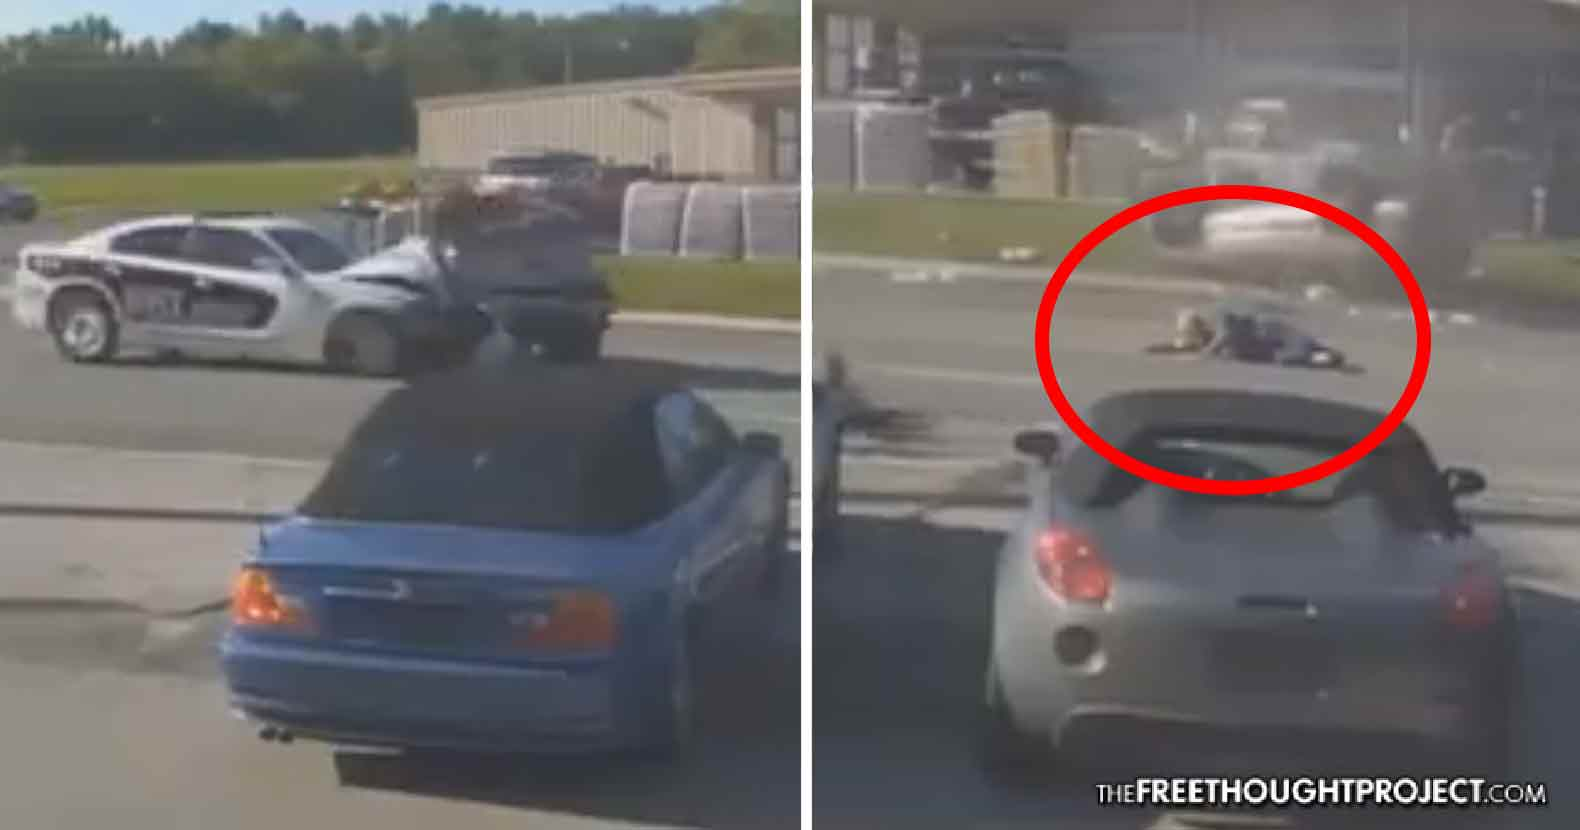 WATCH: Cop Abuses Power, Smashes Into Elderly Couple While